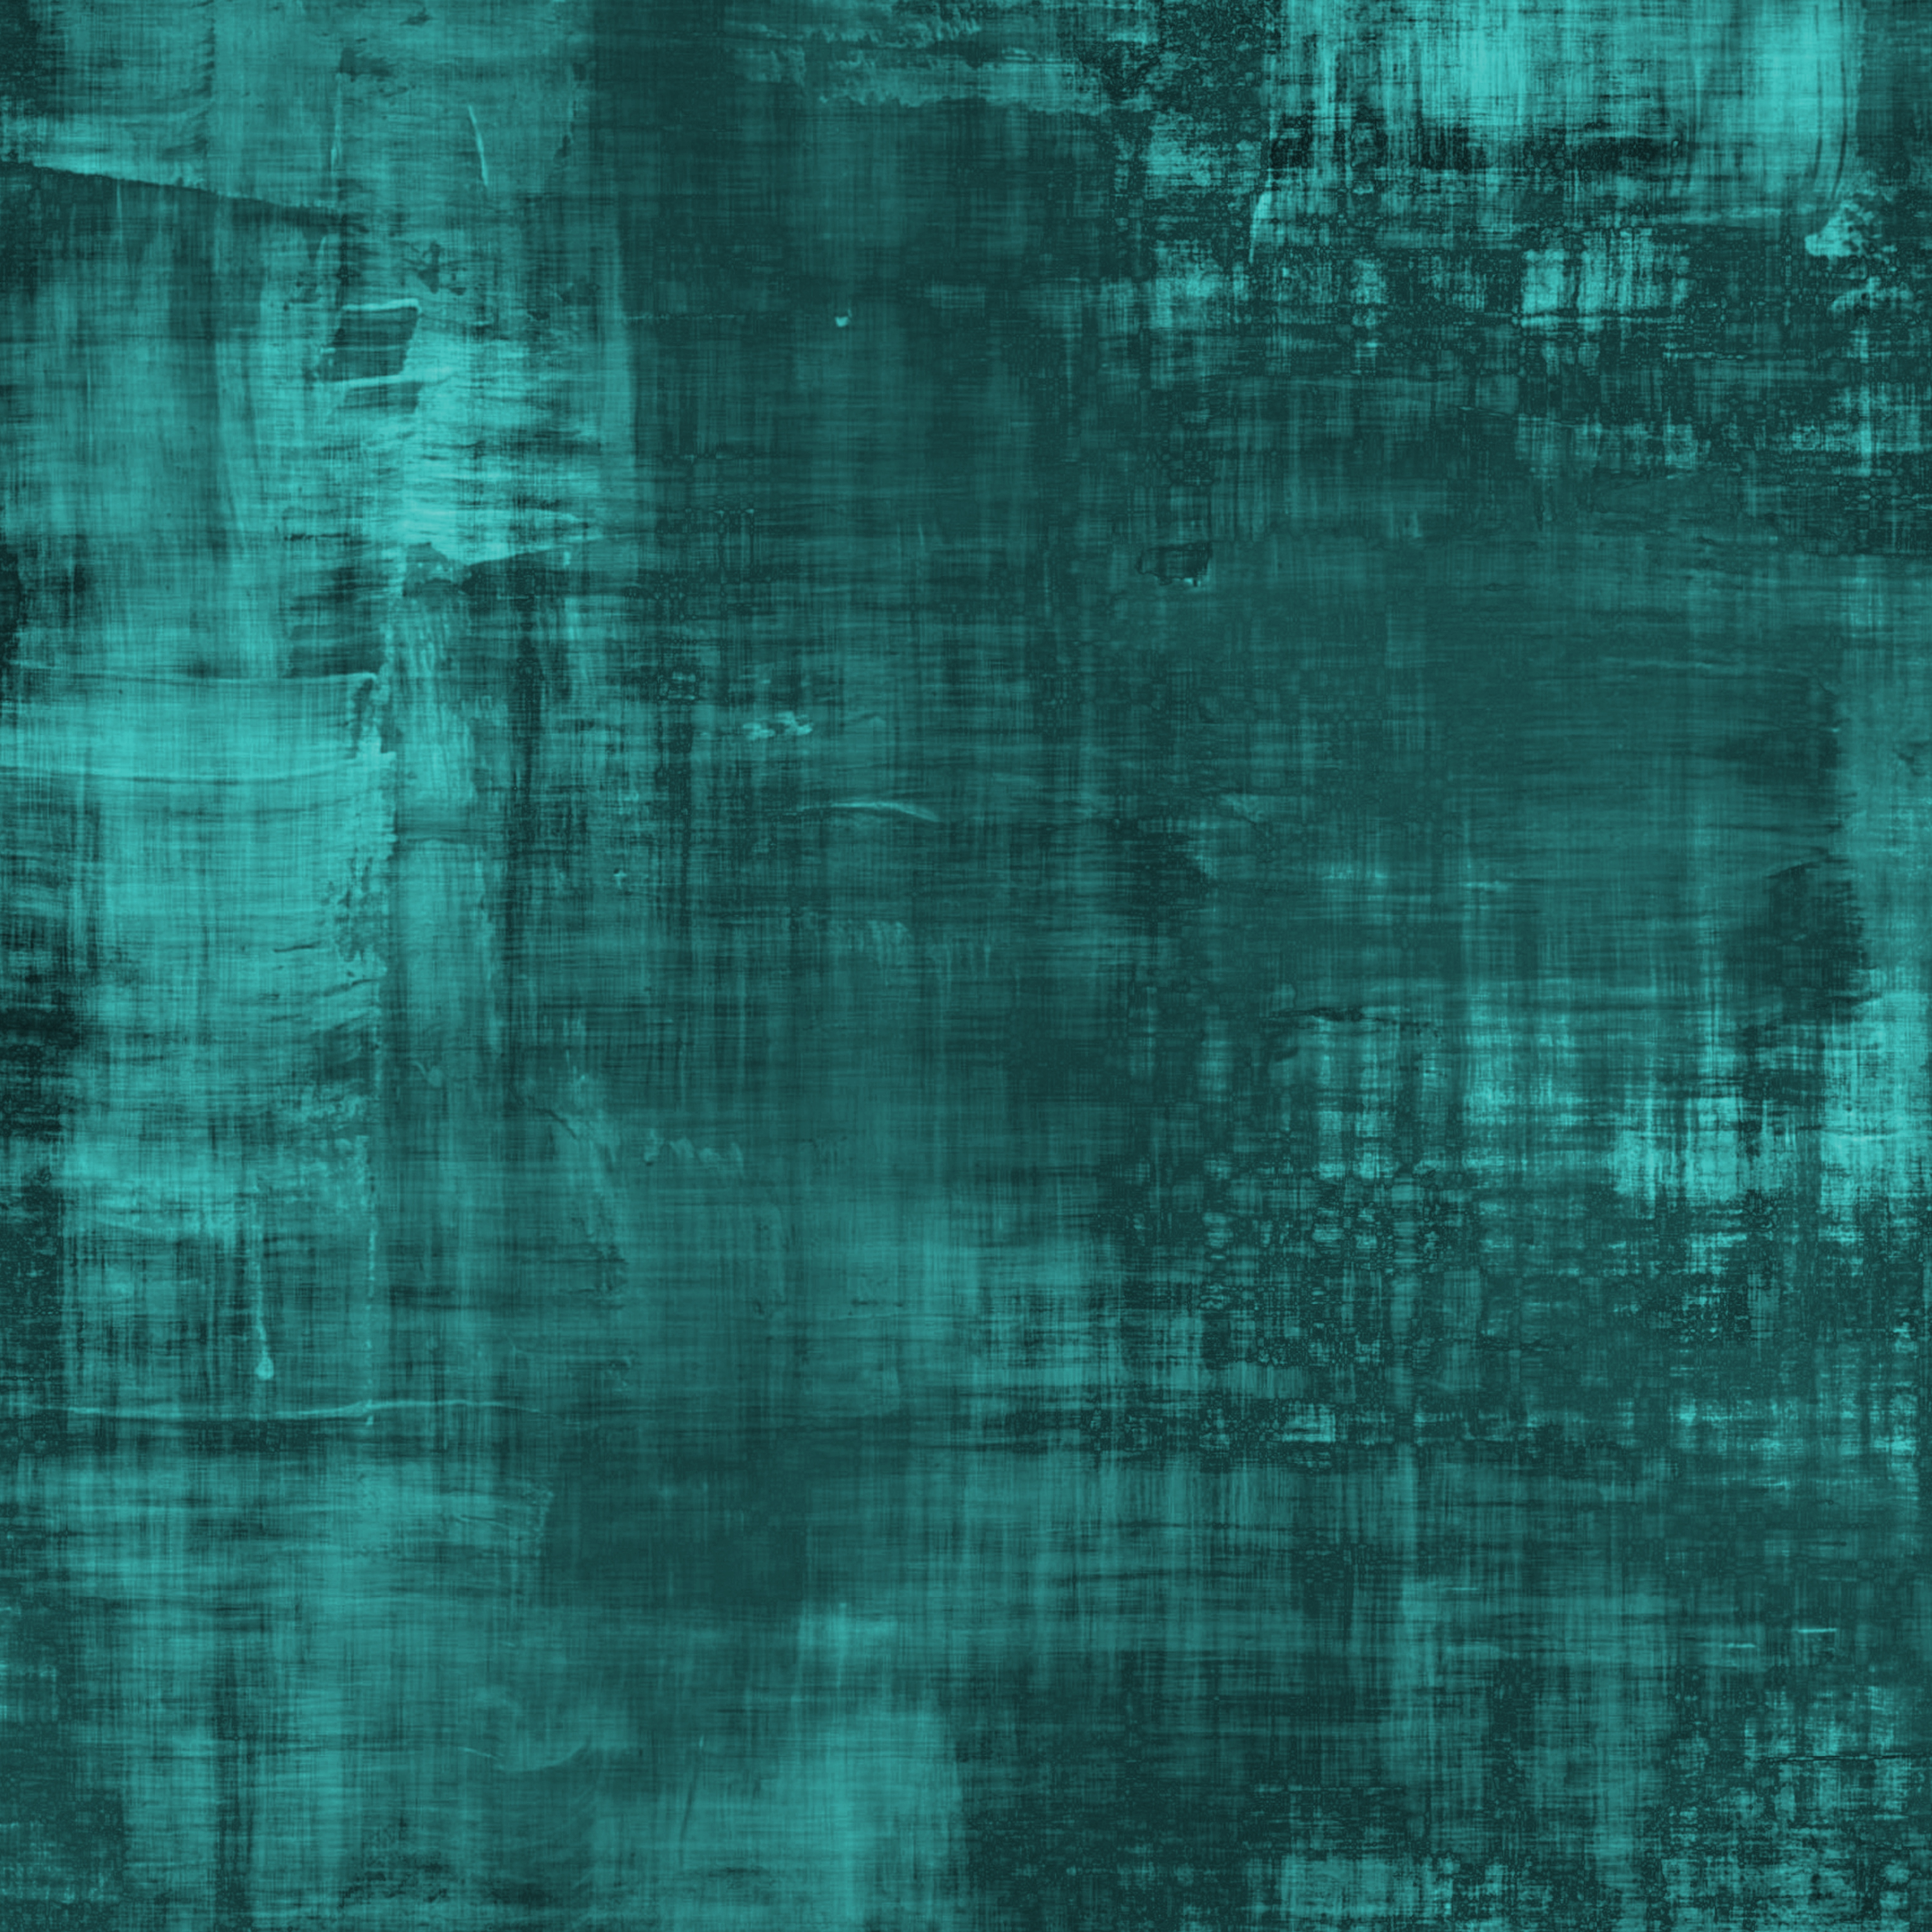 89234 Screensavers and Wallpapers Textures for phone. Download Textures, Texture, Paint, Stains, Spots, Divorces pictures for free